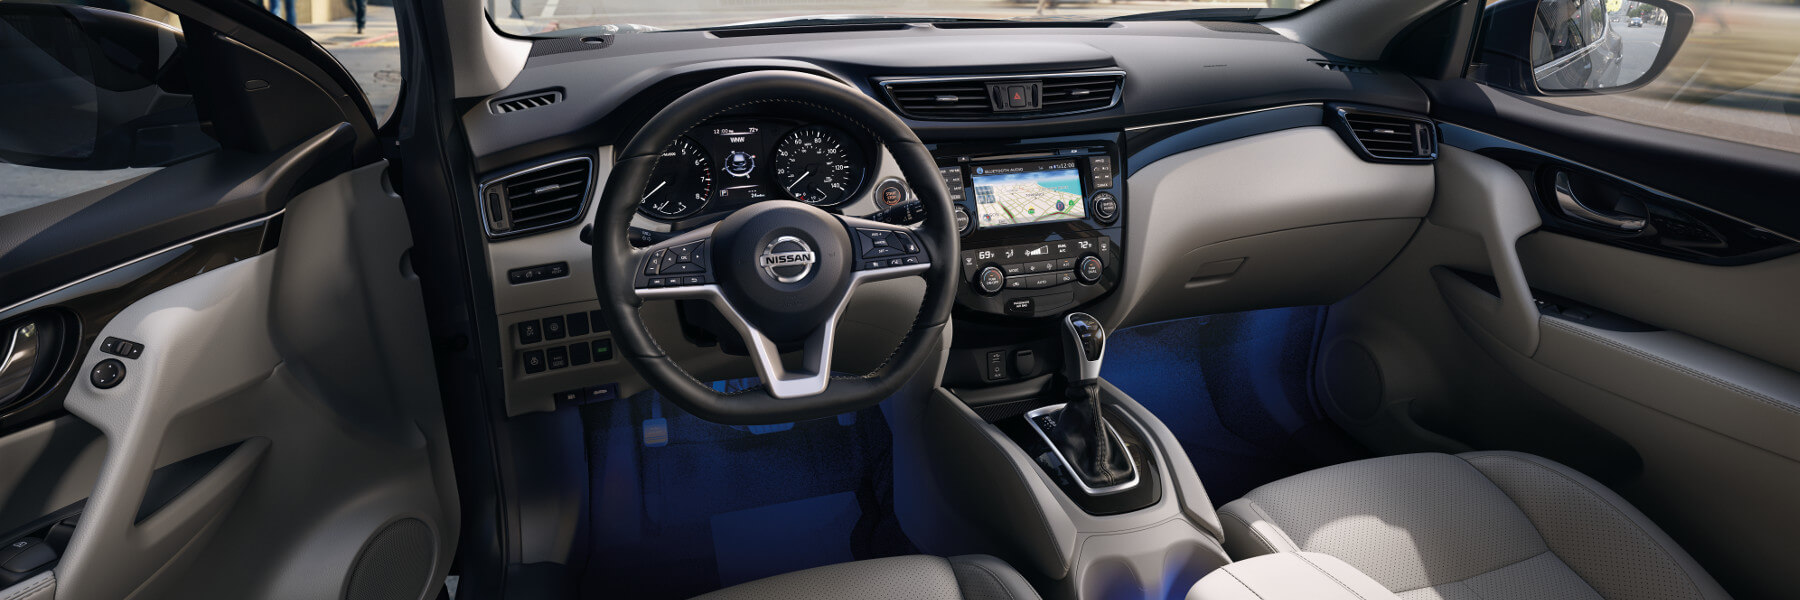 The dashboard in the front of the Nissan Rogue Sport